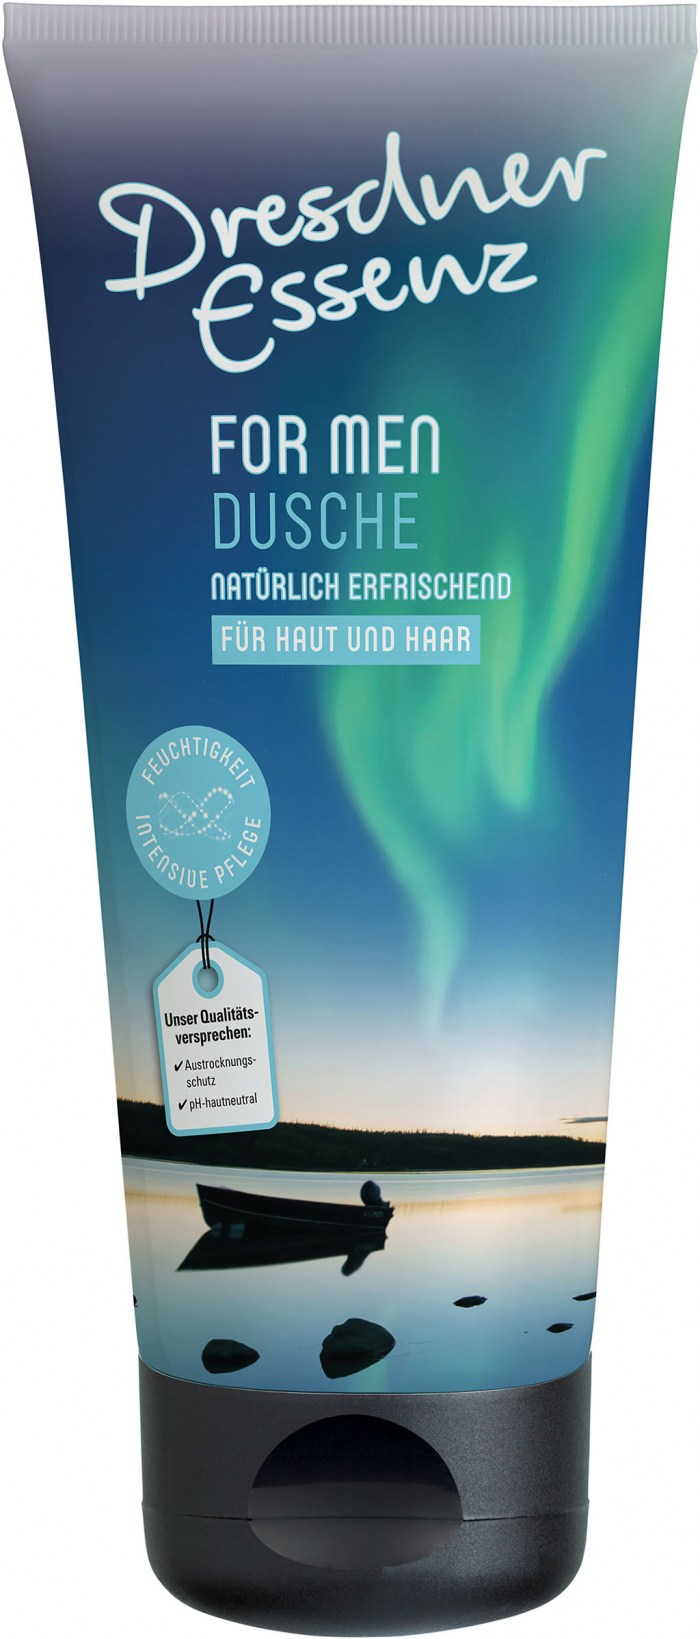 Duschbad - For Men